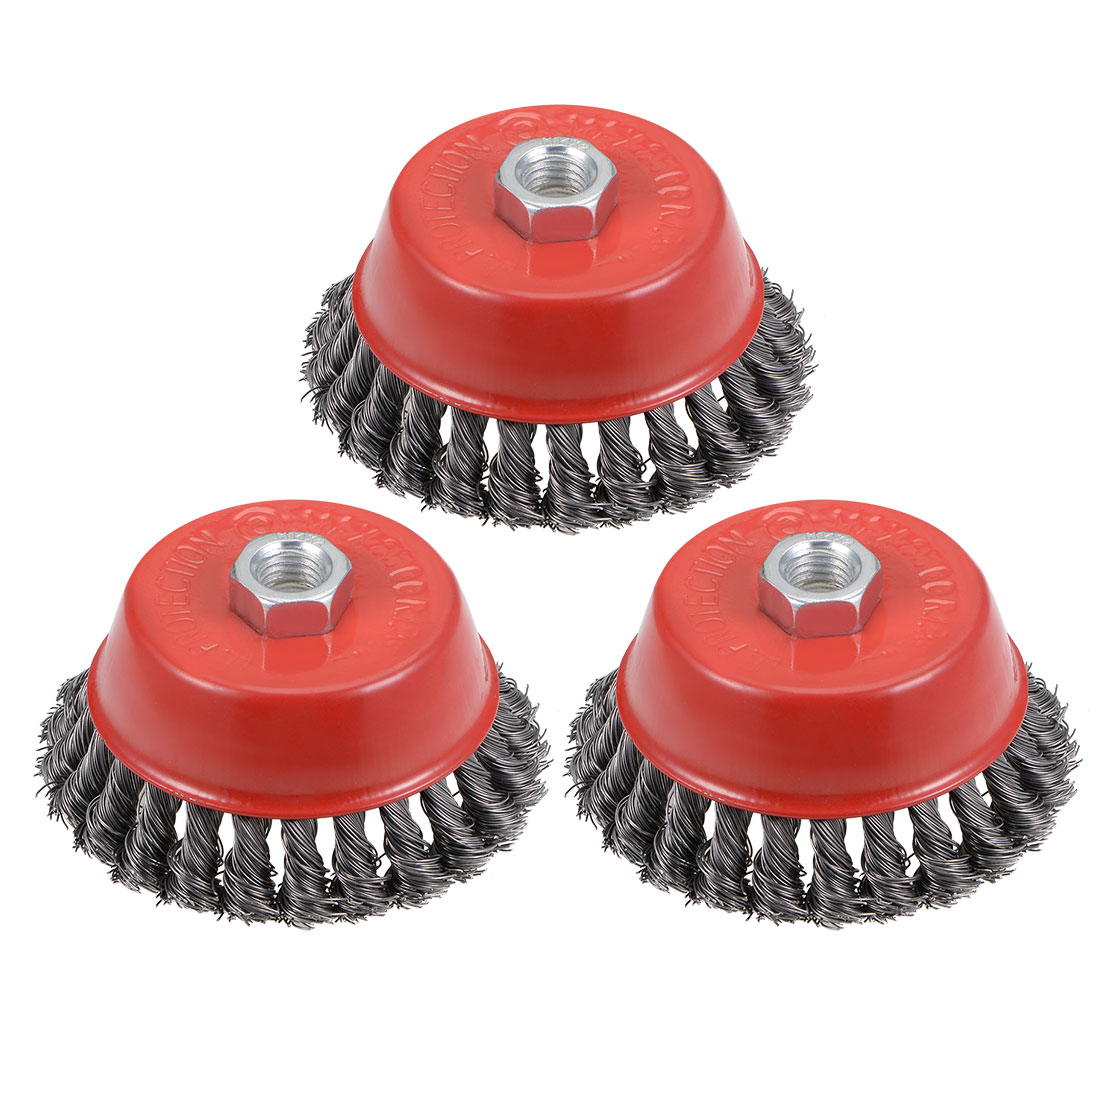 4-Inch Wire Cup Brush Twist Knotted Crimped Steel with M14 Threaded Hole 3 Pcs